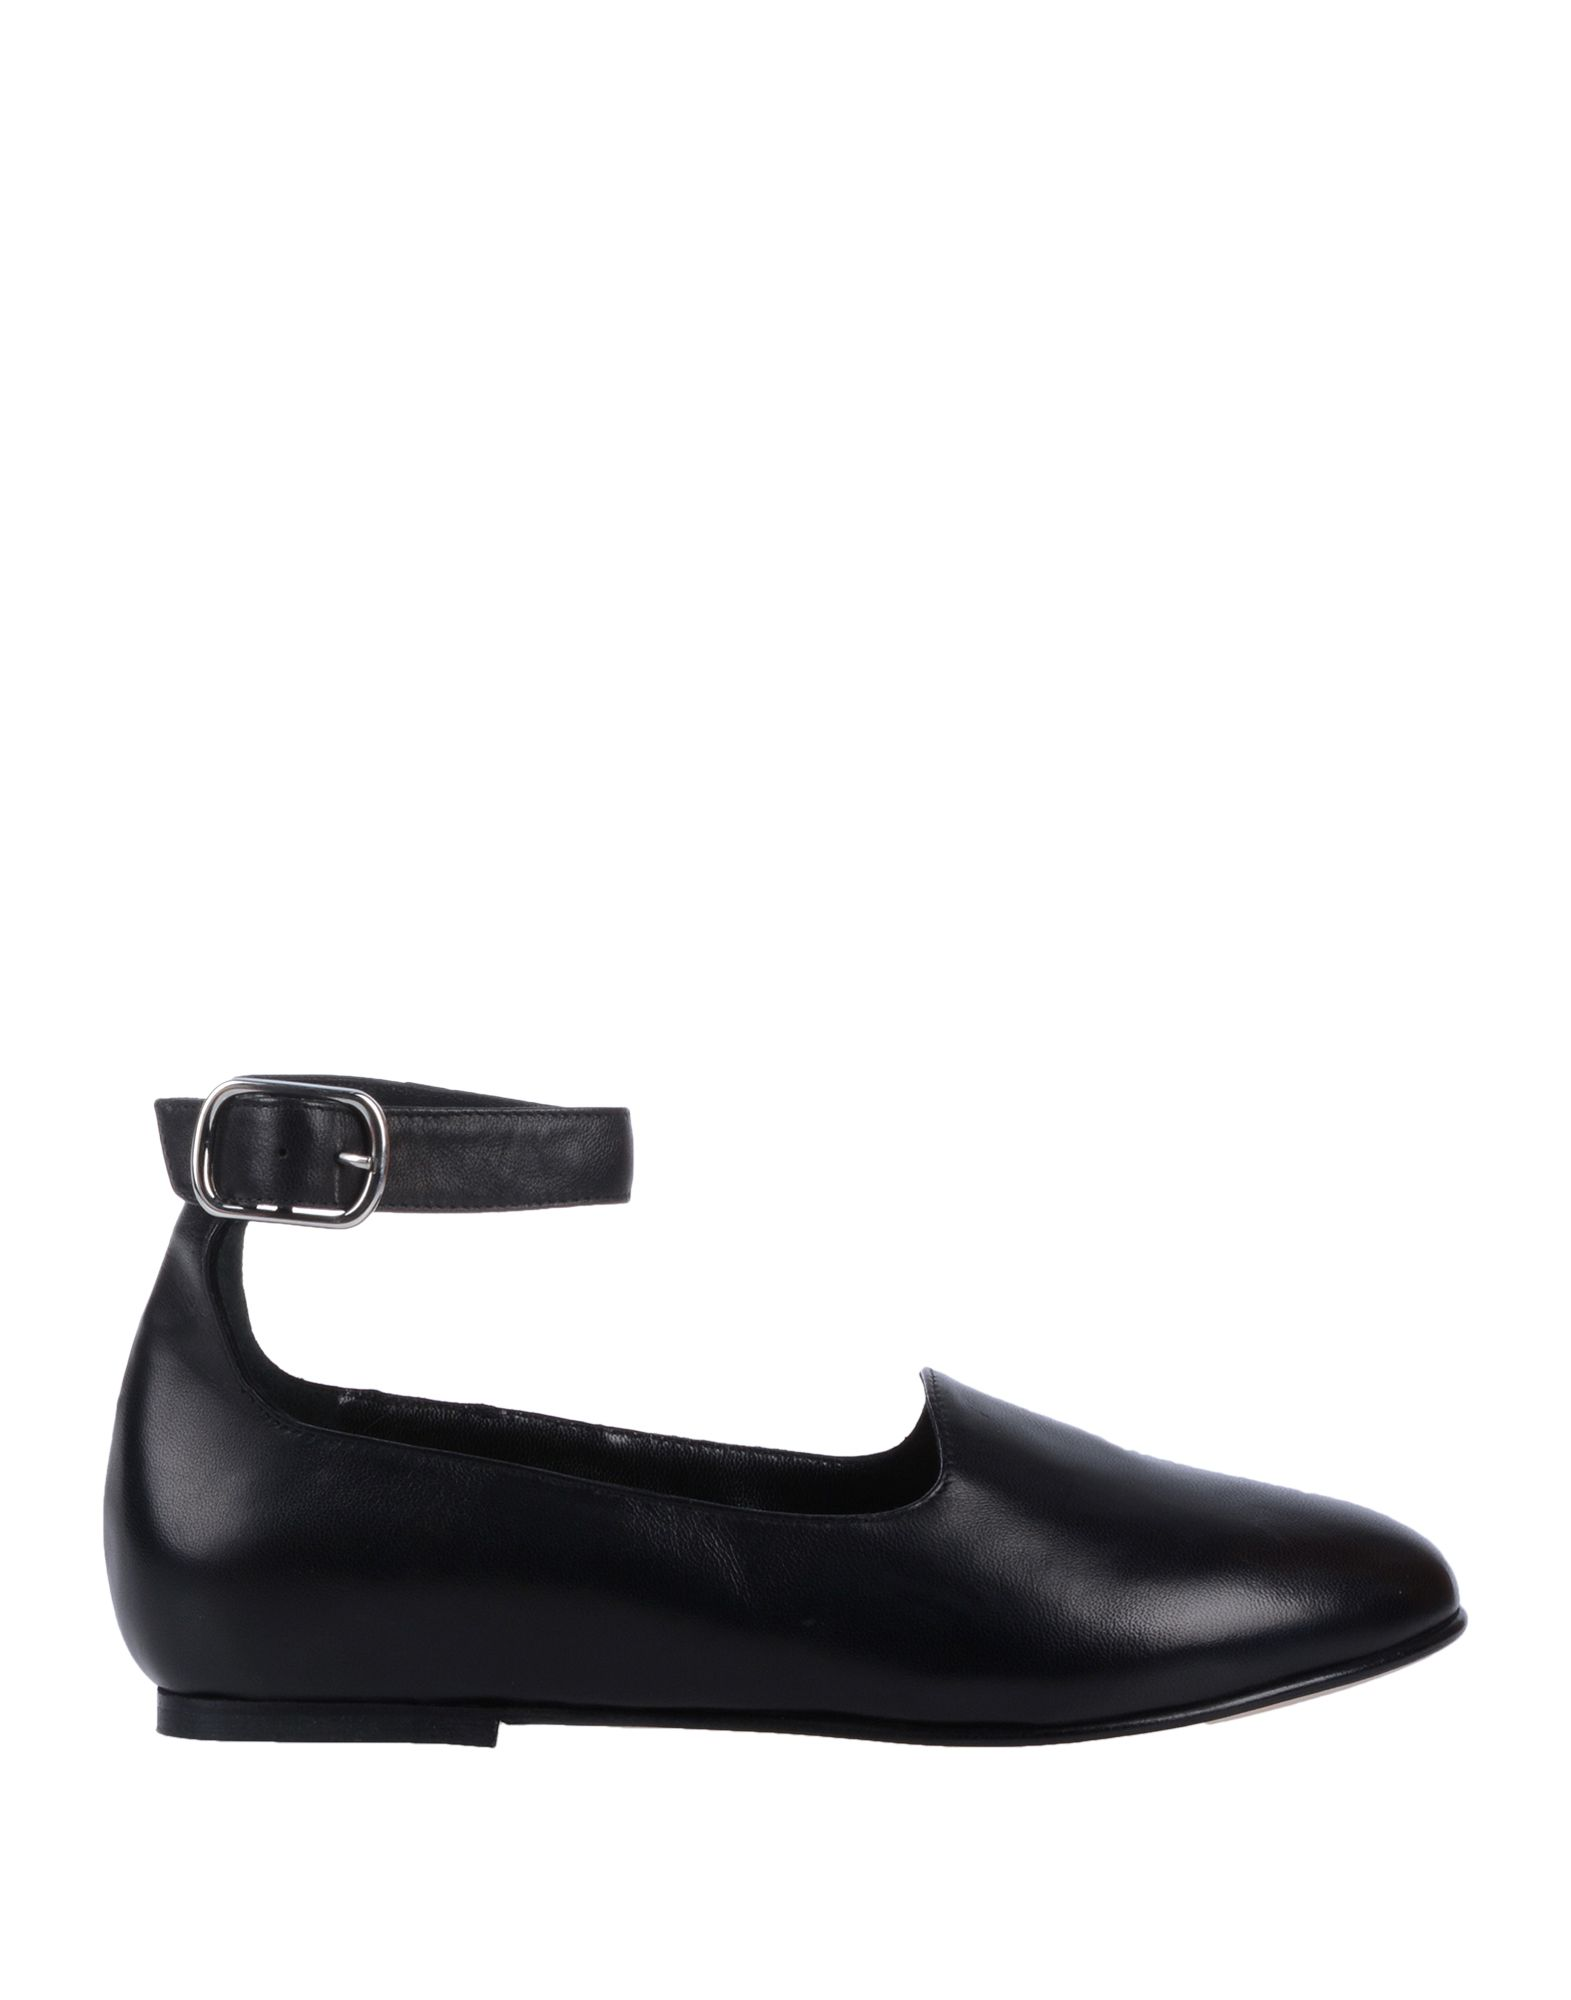 J|D Julie Dee Julie Loafers - Women J|D Julie Dee Dee Loafers online on  Canada - 11533182LD 844533